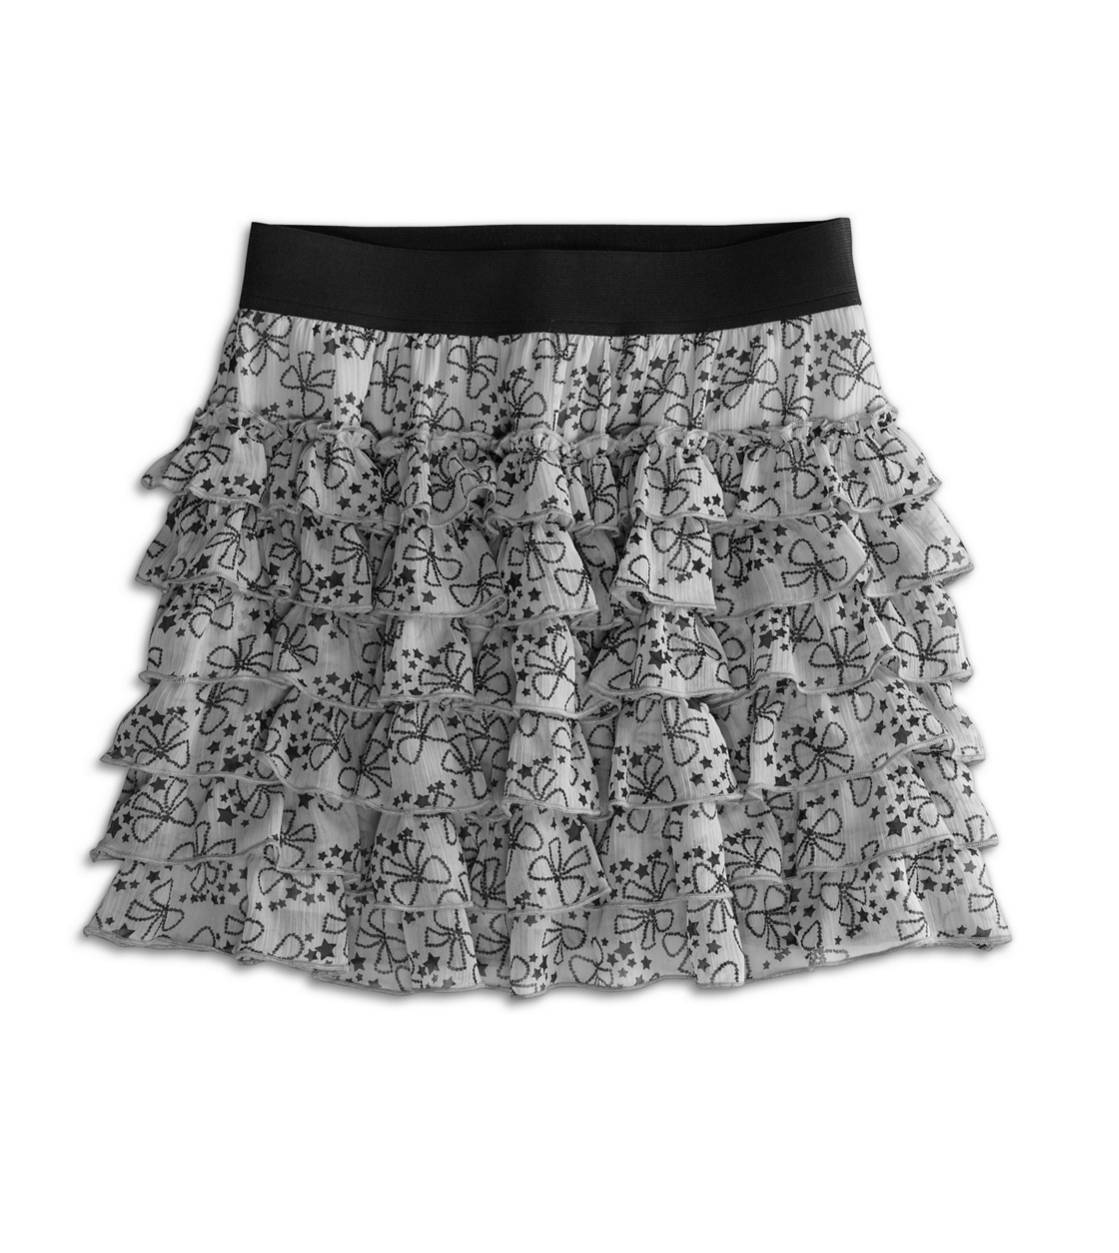 77 twirly ruffle skirt 77kids by American Eagle from ae.com